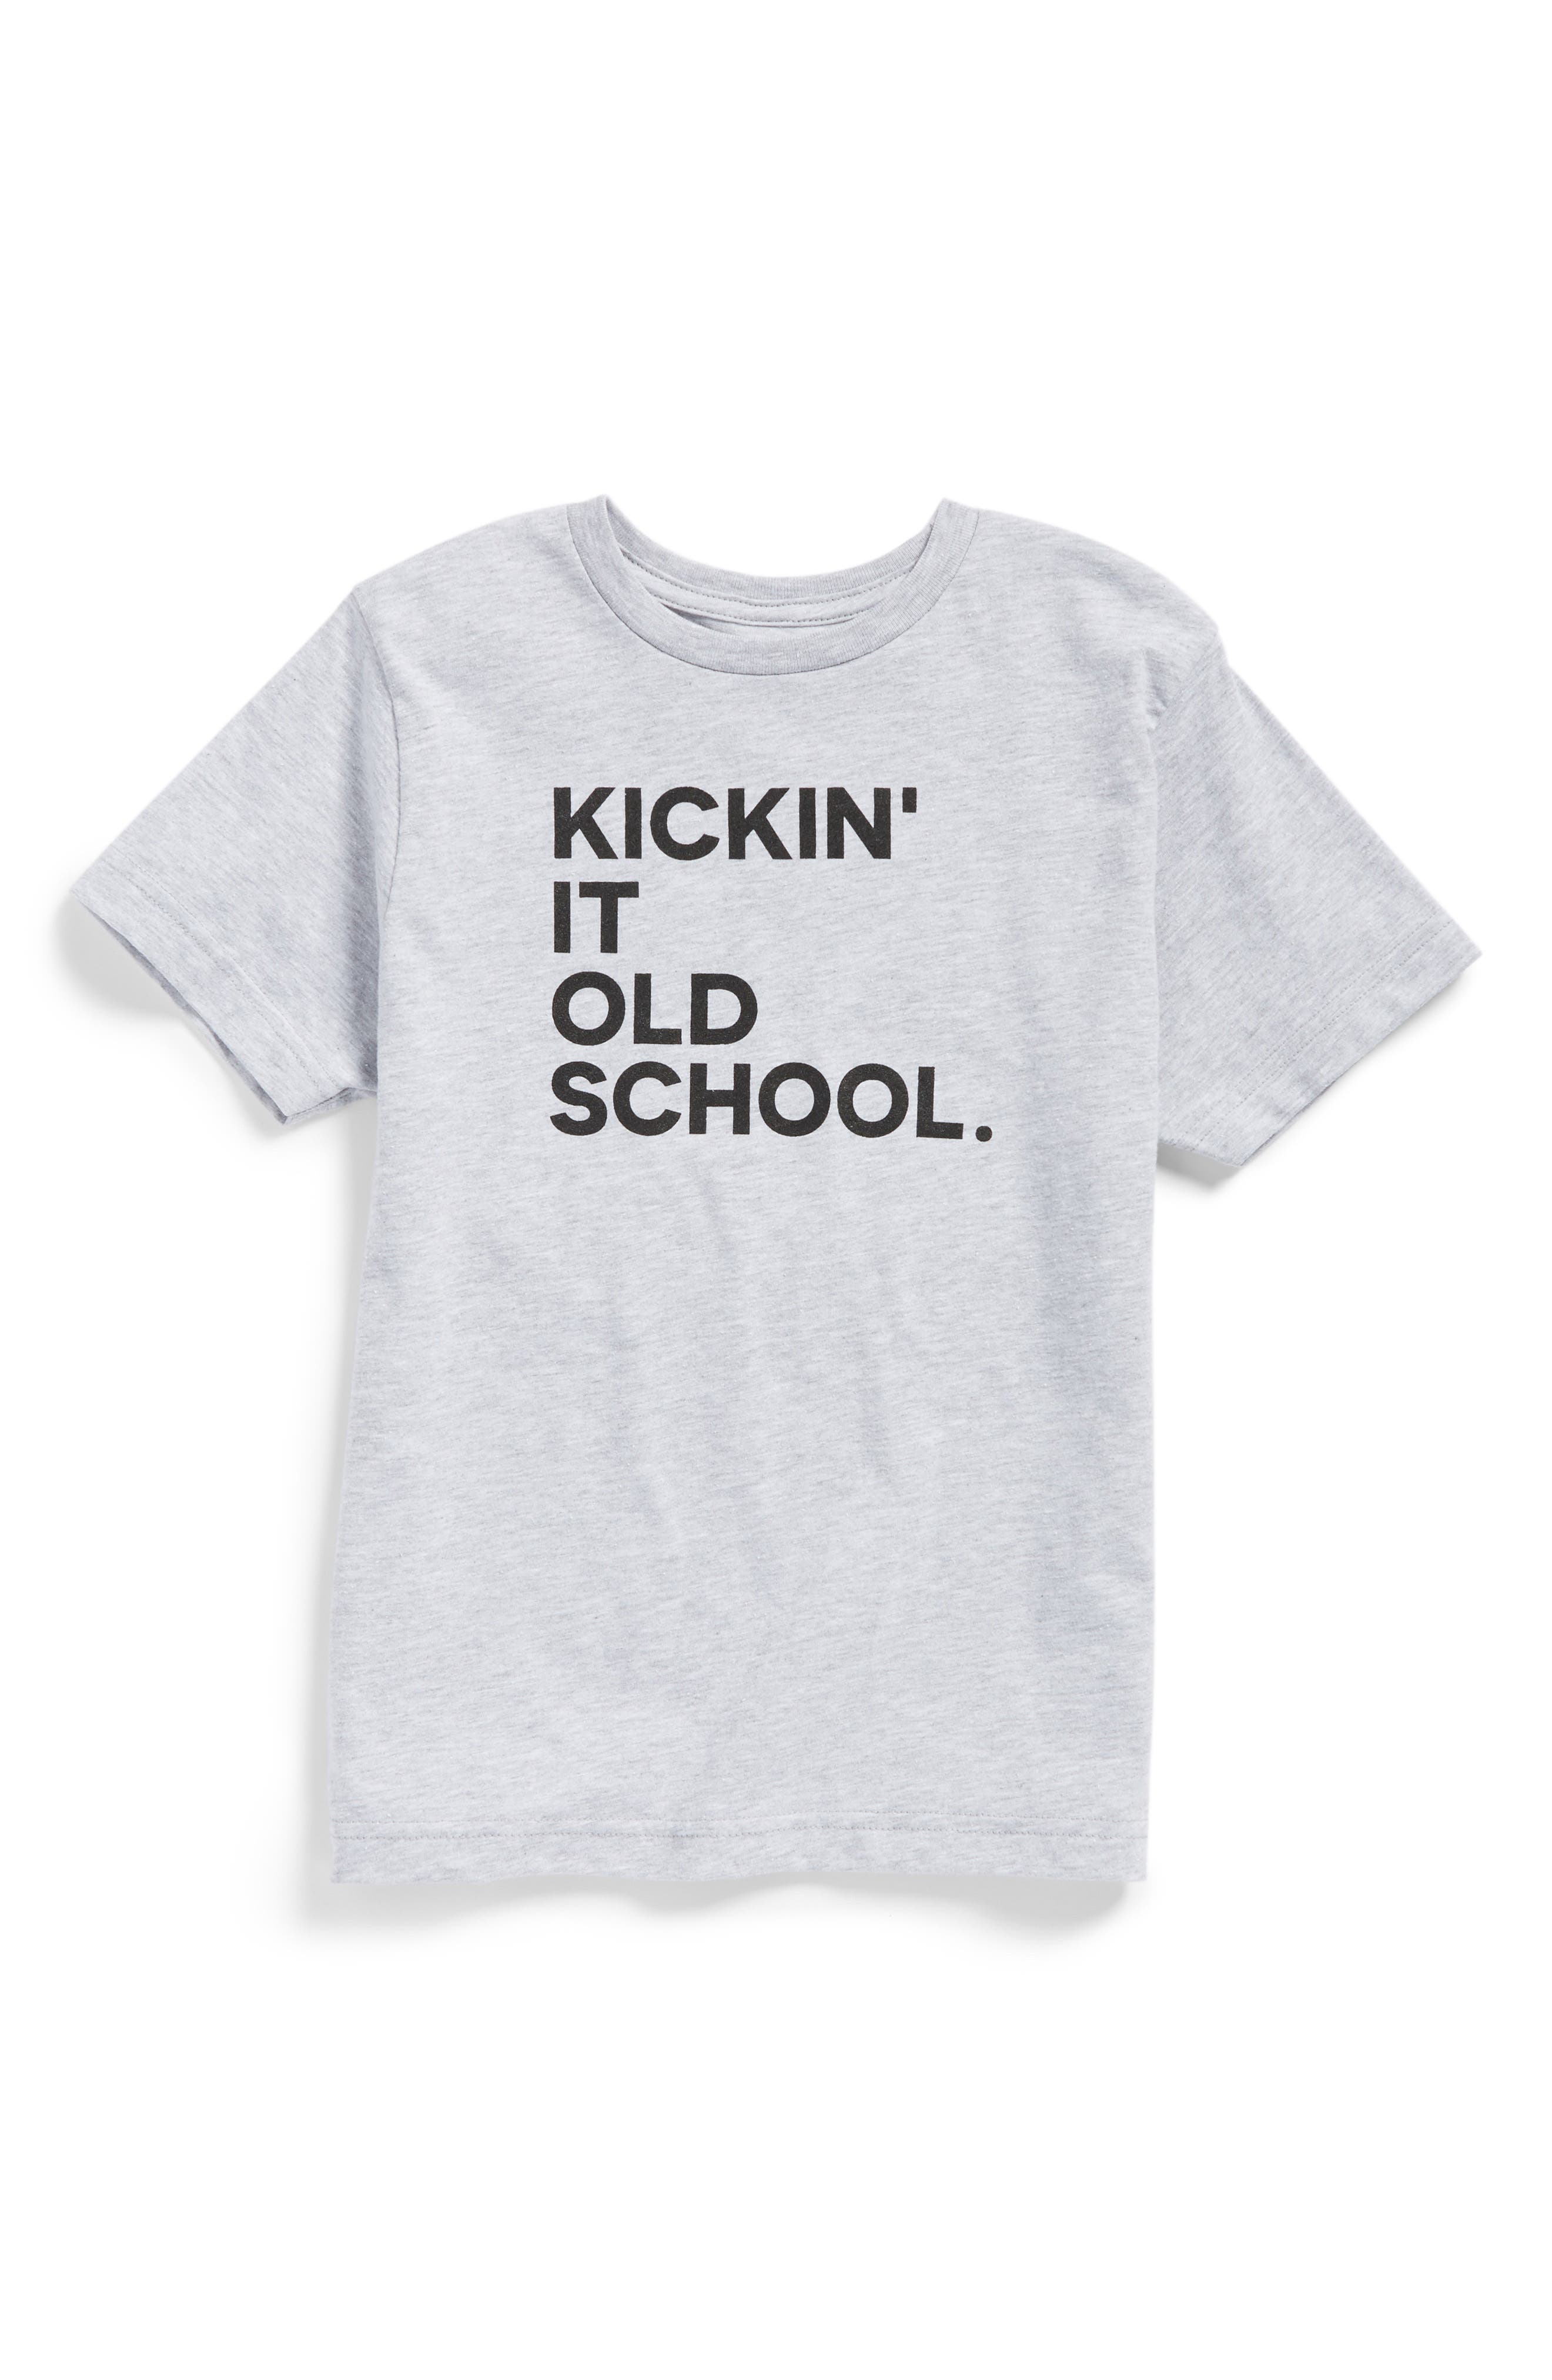 Kickin' It Old School Graphic T-Shirt,                         Main,                         color, 020